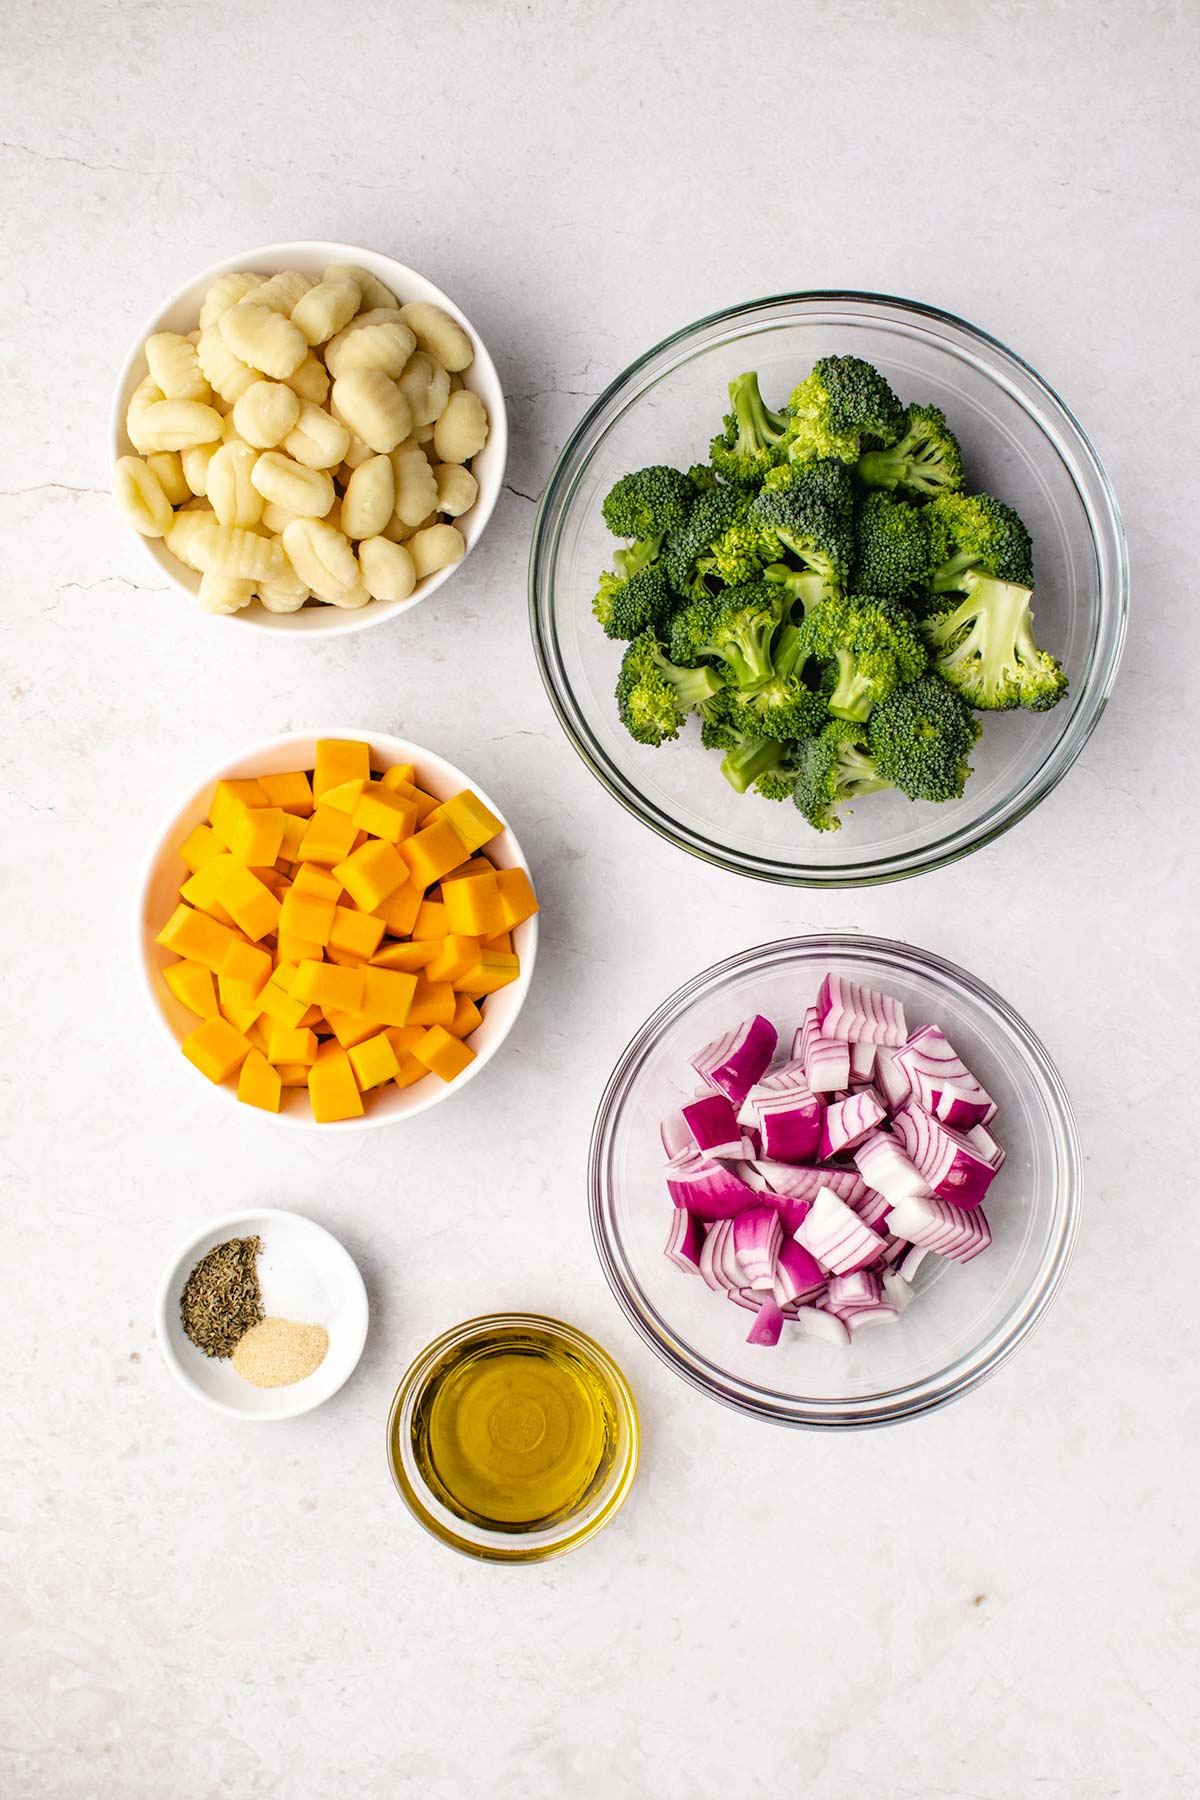 ingredients for sheet pan gnocchi in small bowls viewed from overhead